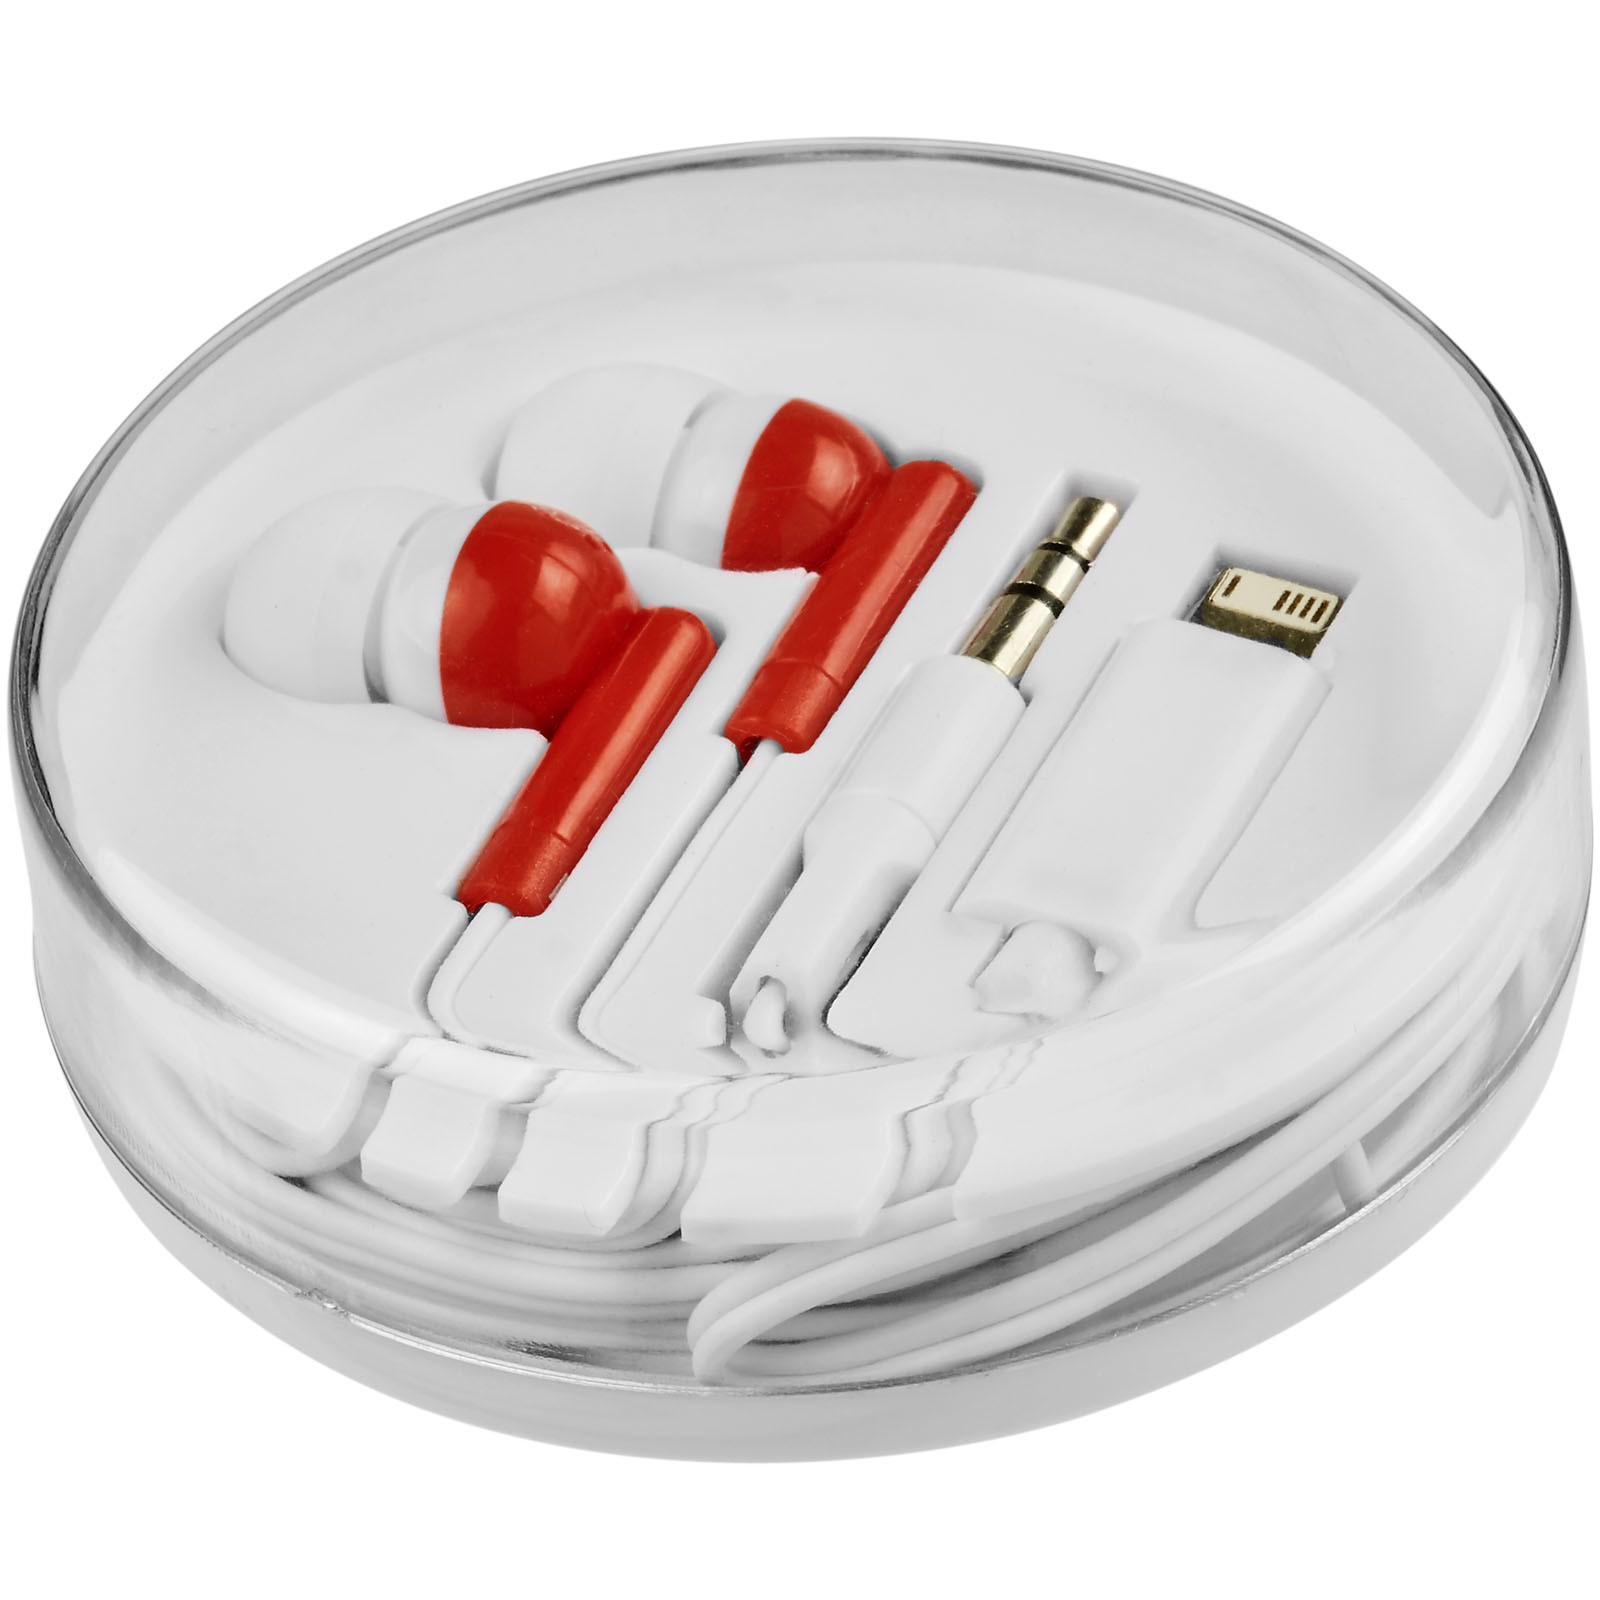 Switch earbuds with multi tips - Red